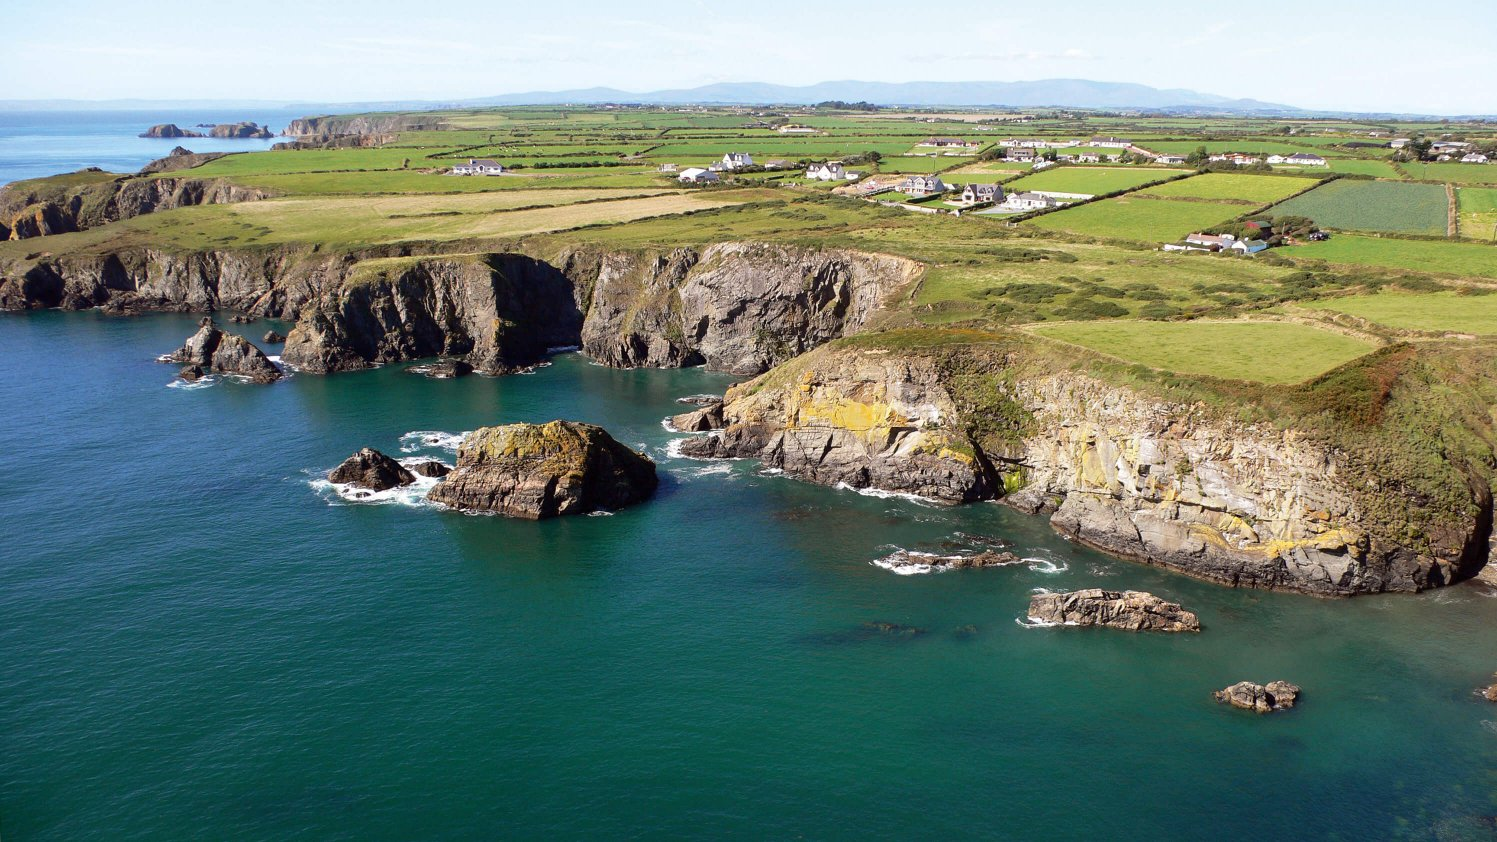 Sea, cliffs and patchwork green fields along the Copper Coast in Waterford